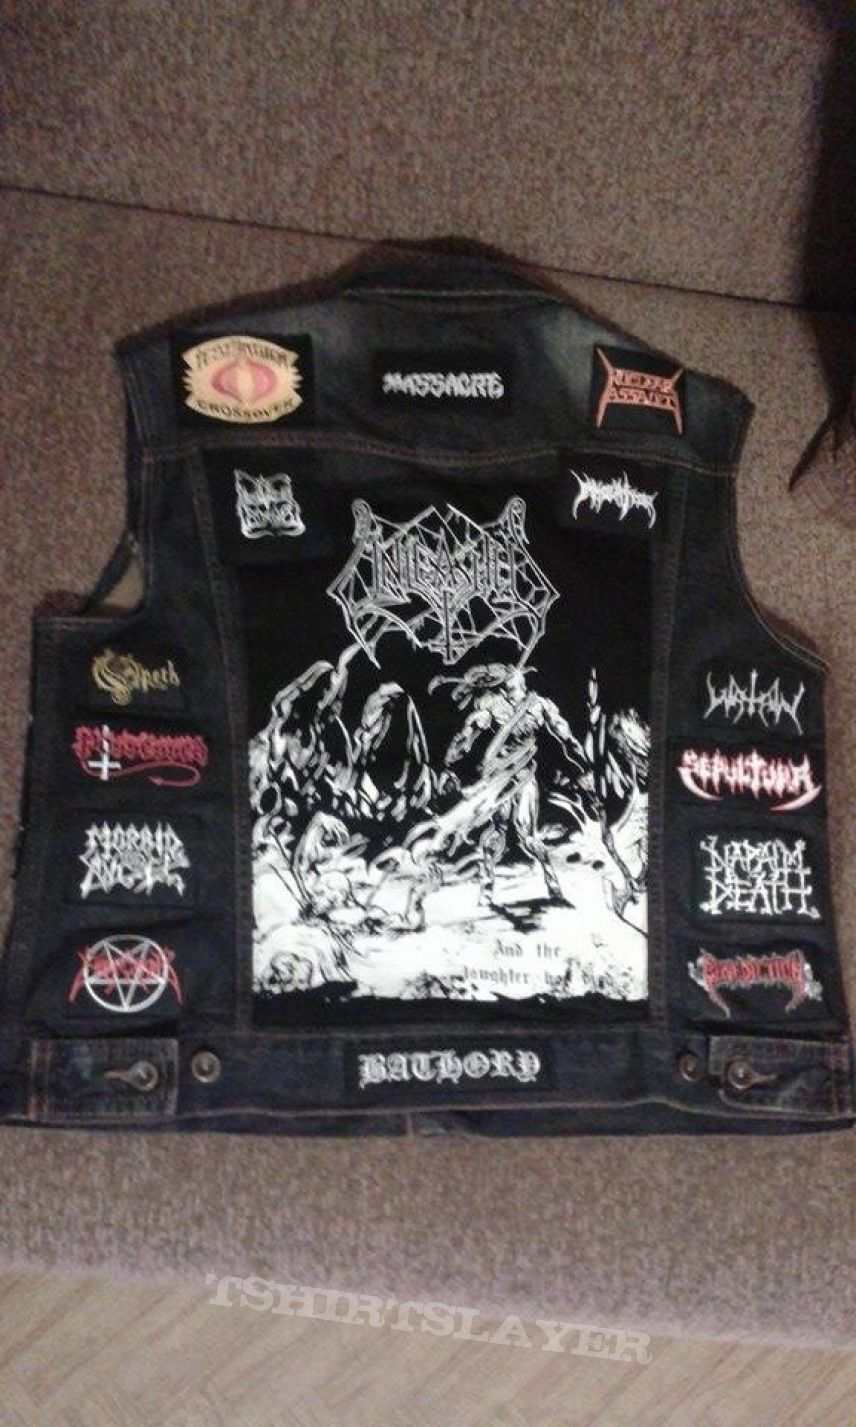 Yet another battle jacket...